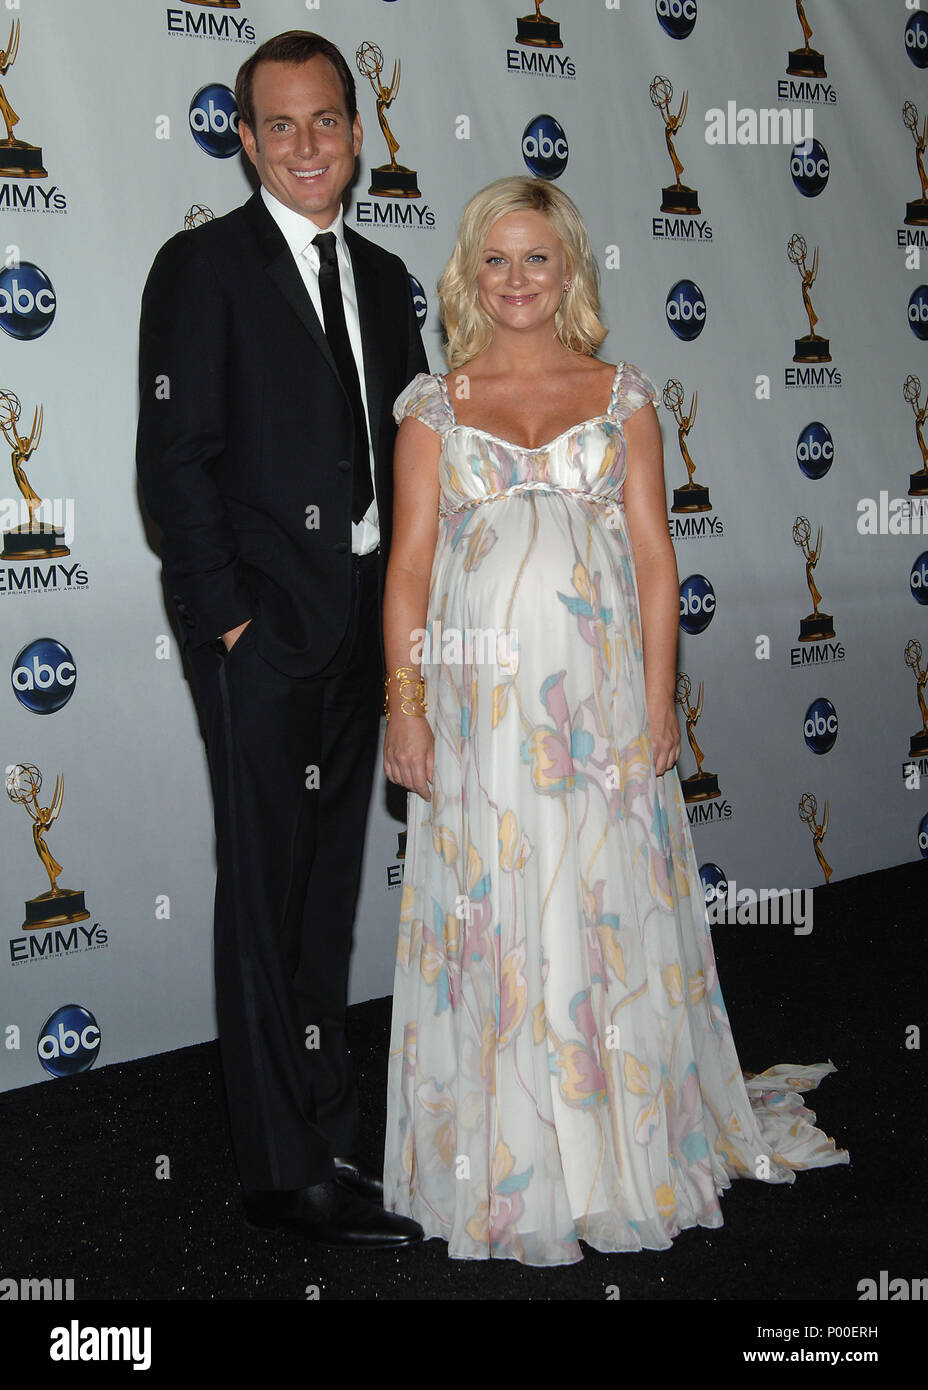 Amy Poehler And Will Arnett 60th Annual Emmys Awards At The Nokia